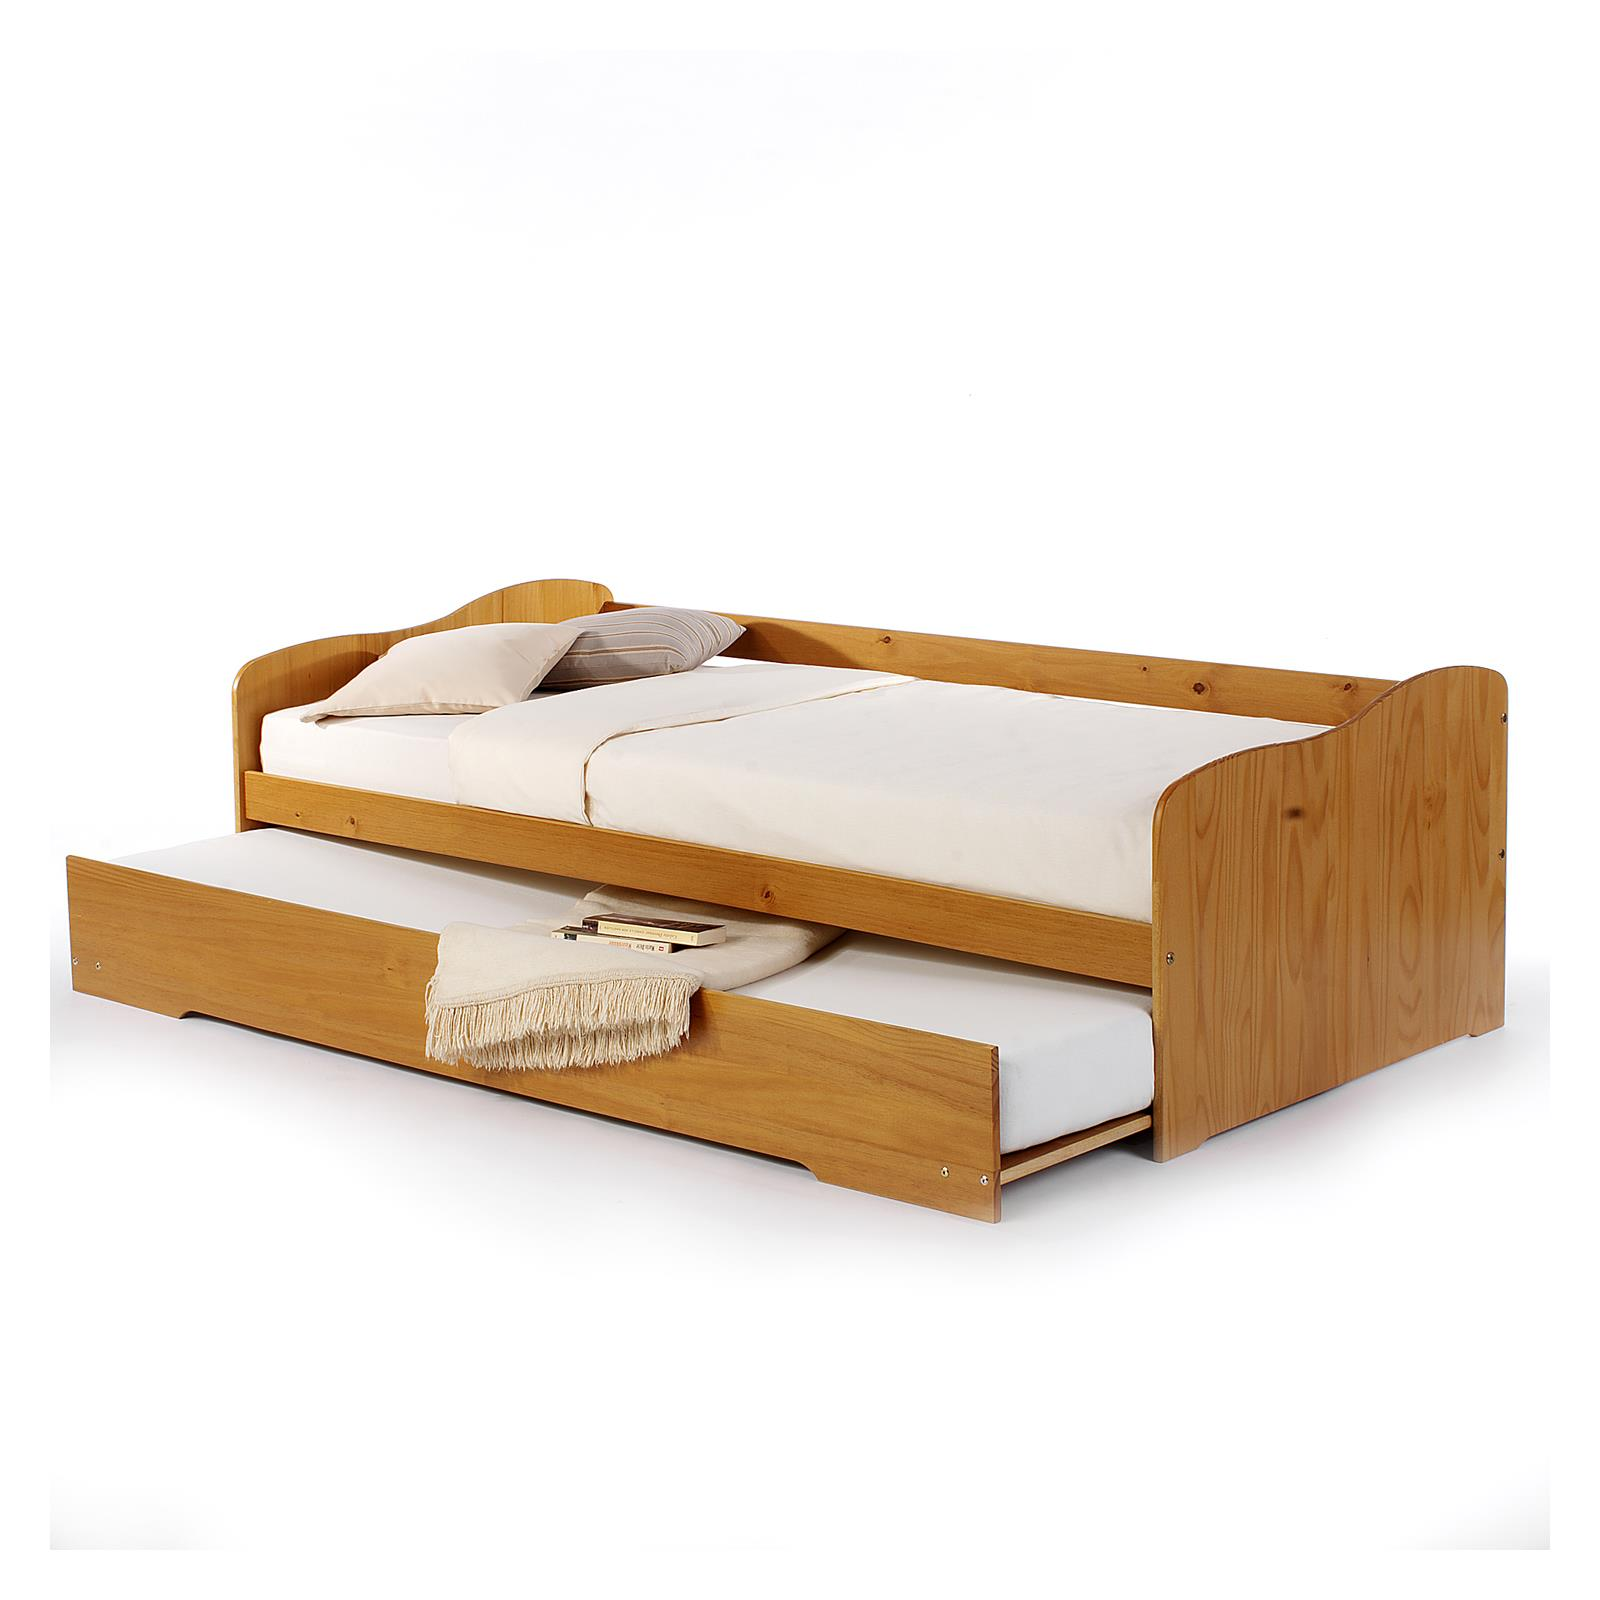 jugendbett funktionsbett g ste einzel auszugs bettkasten tandemliege 90x200 ebay. Black Bedroom Furniture Sets. Home Design Ideas